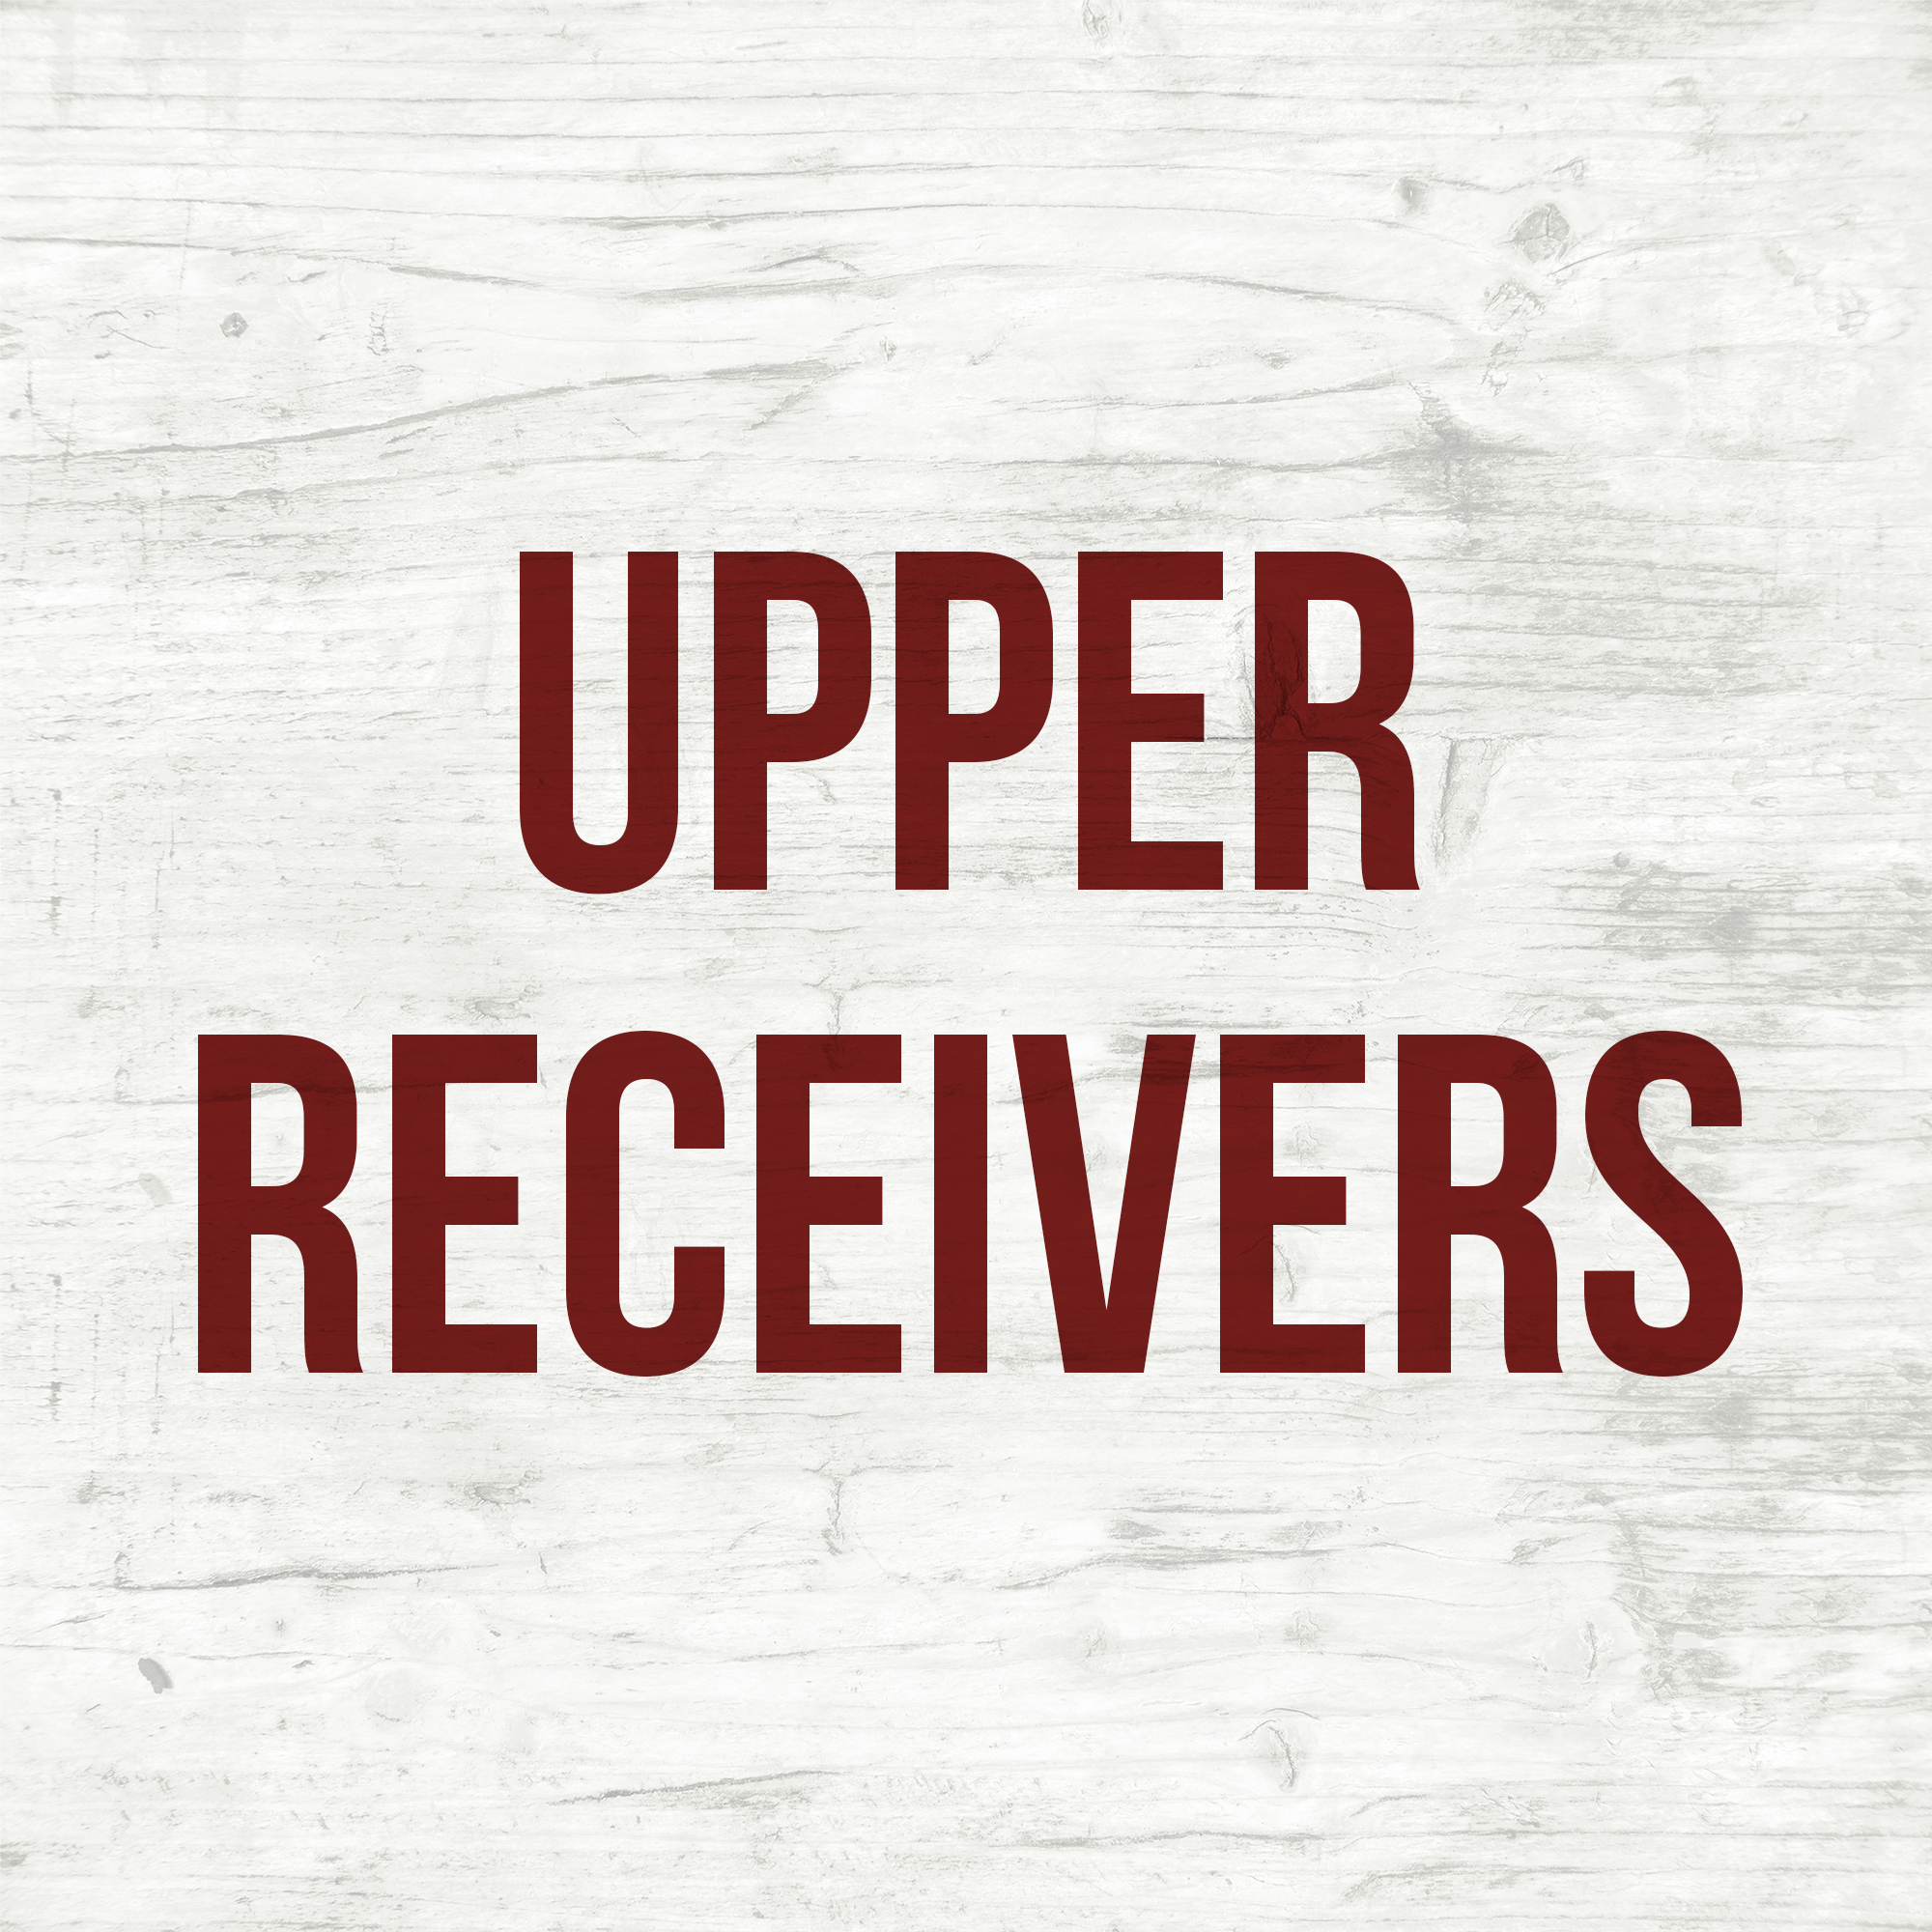 Upper Receivers